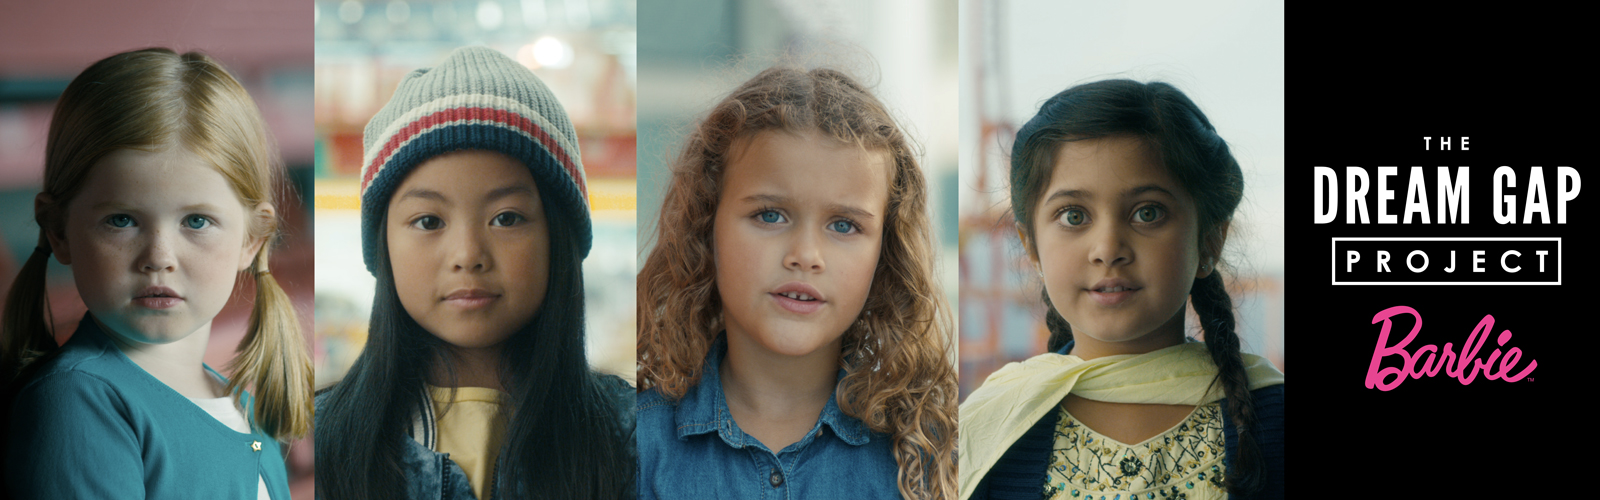 four portraits of faces of young girls